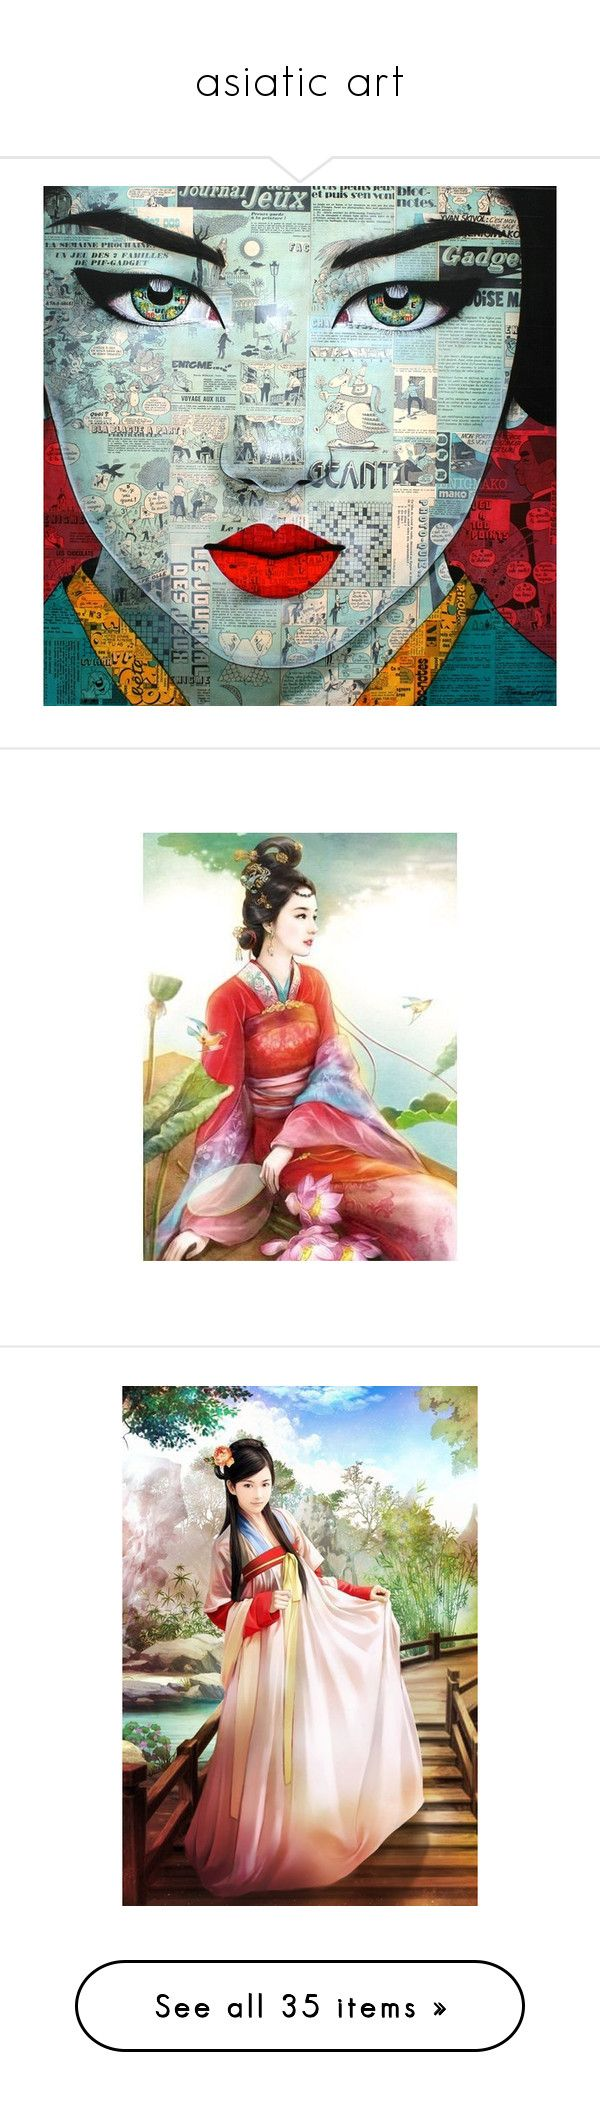 """asiatic art"" by anoo17k ❤ liked on Polyvore featuring backgrounds, art, faces, oriental, people, home, home decor, wall art, asian and figures"